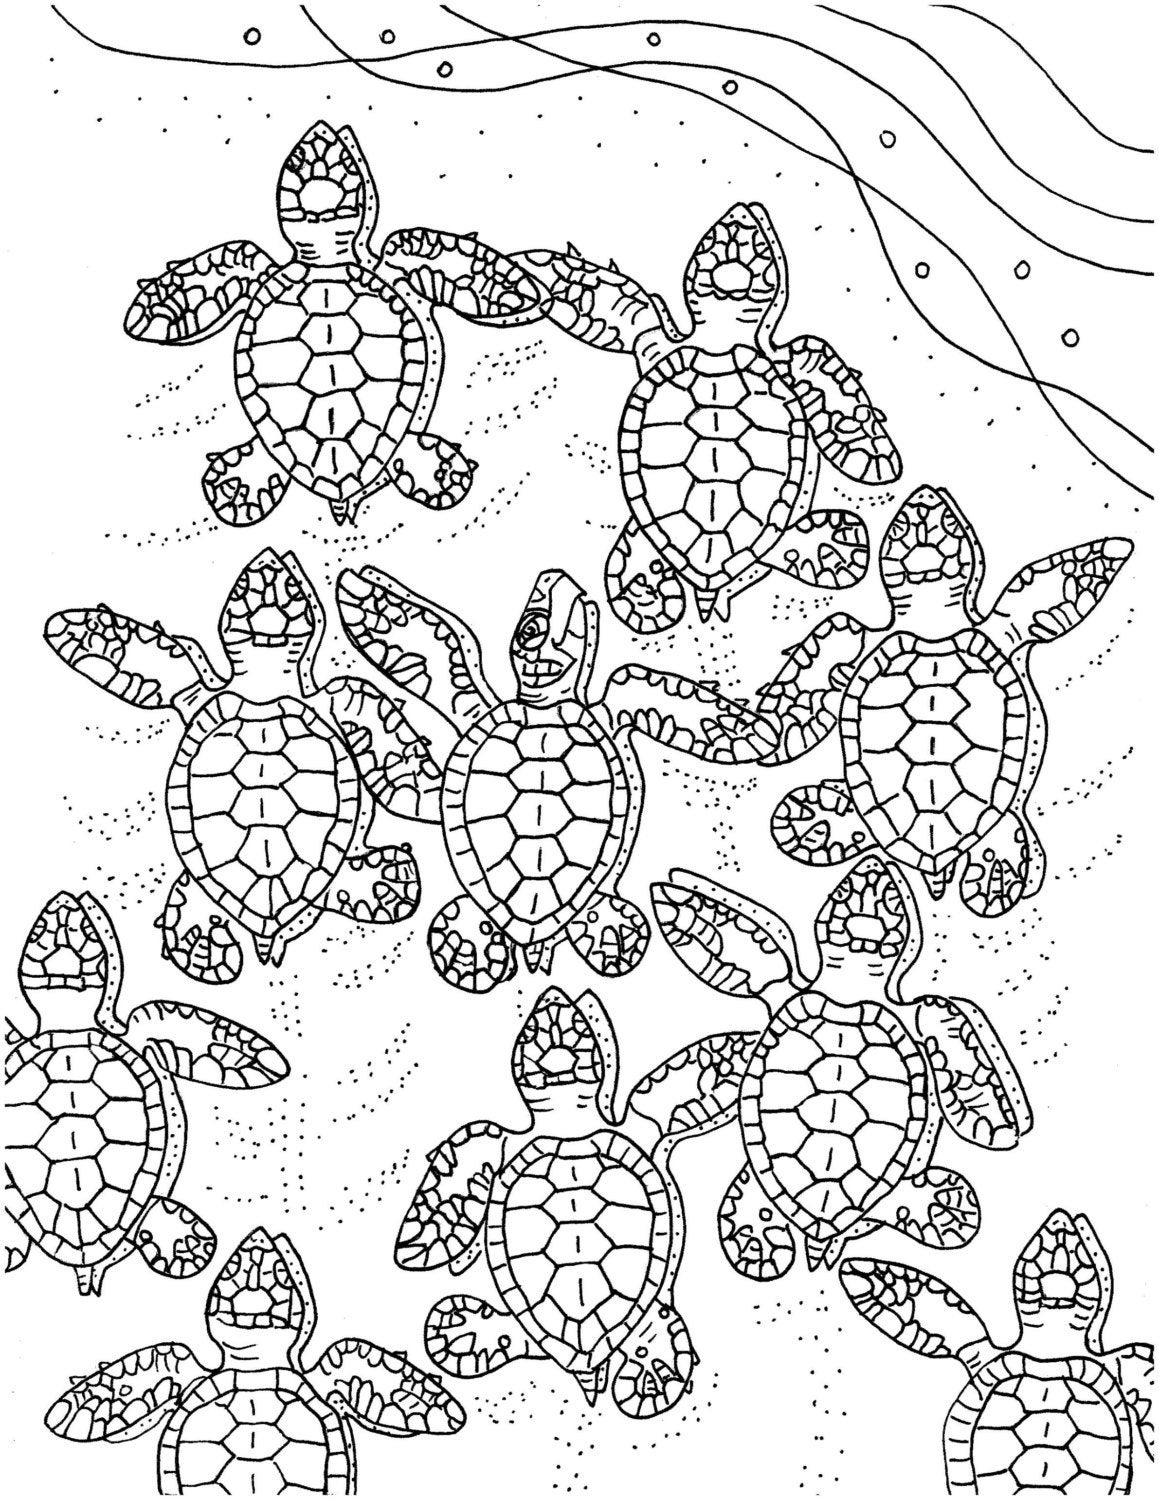 sea turtle coloring page sea turtle coloring pages getcoloringpagescom page coloring sea turtle